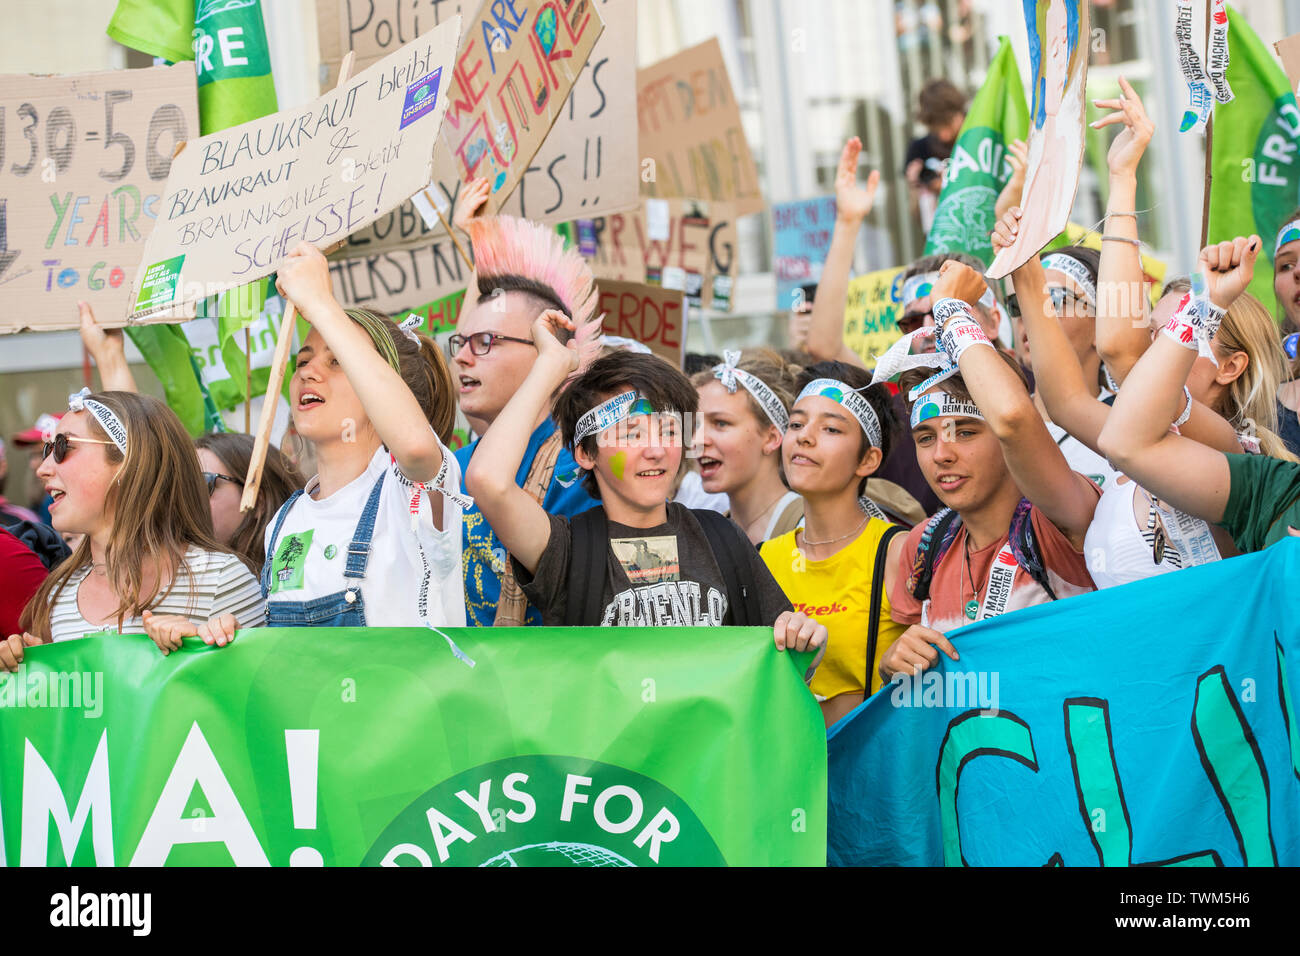 """""""Fridays for Future"""" demonstration in Aachen, germany at 21 of 2019. Stock Photo"""